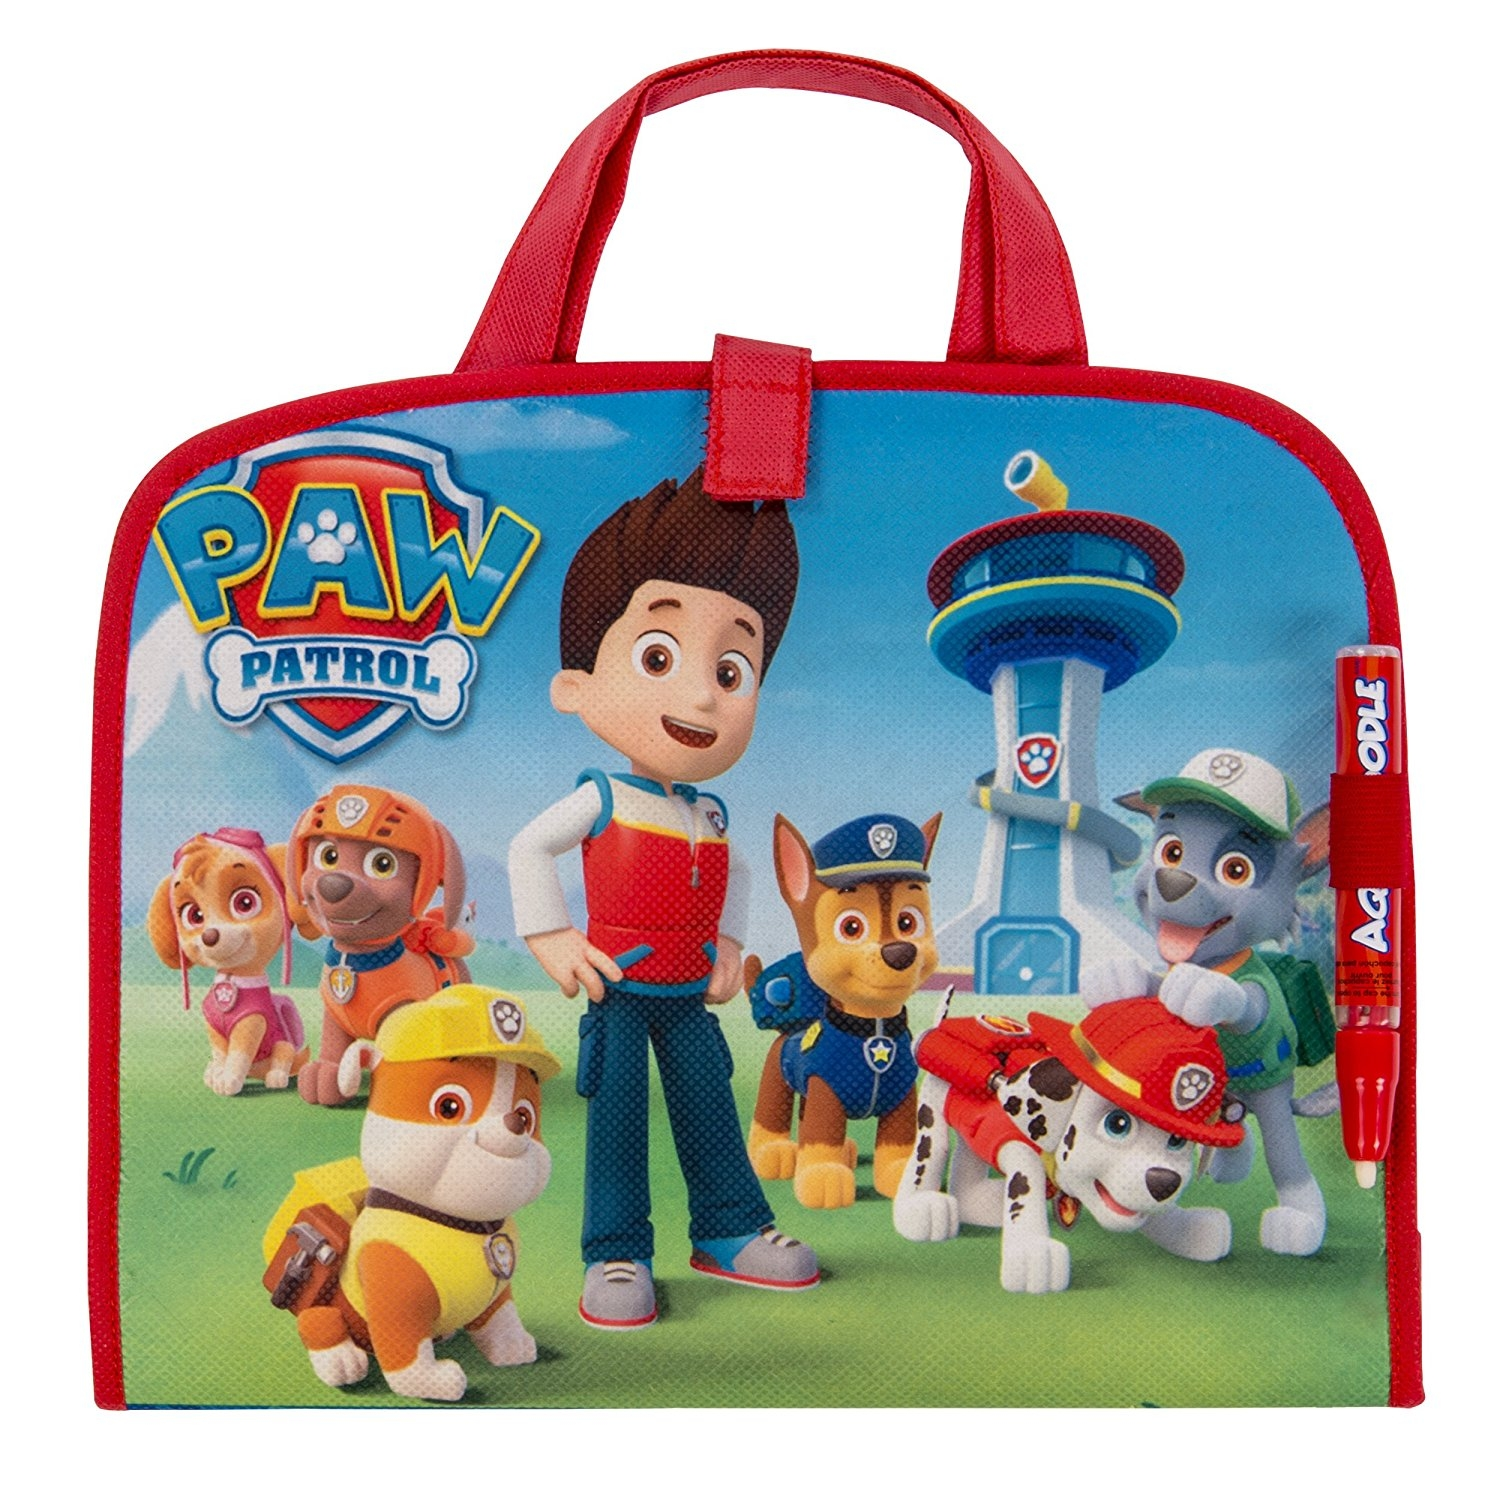 Spin Master AquaDoodle Travel Doodle Paw Patrol Toy